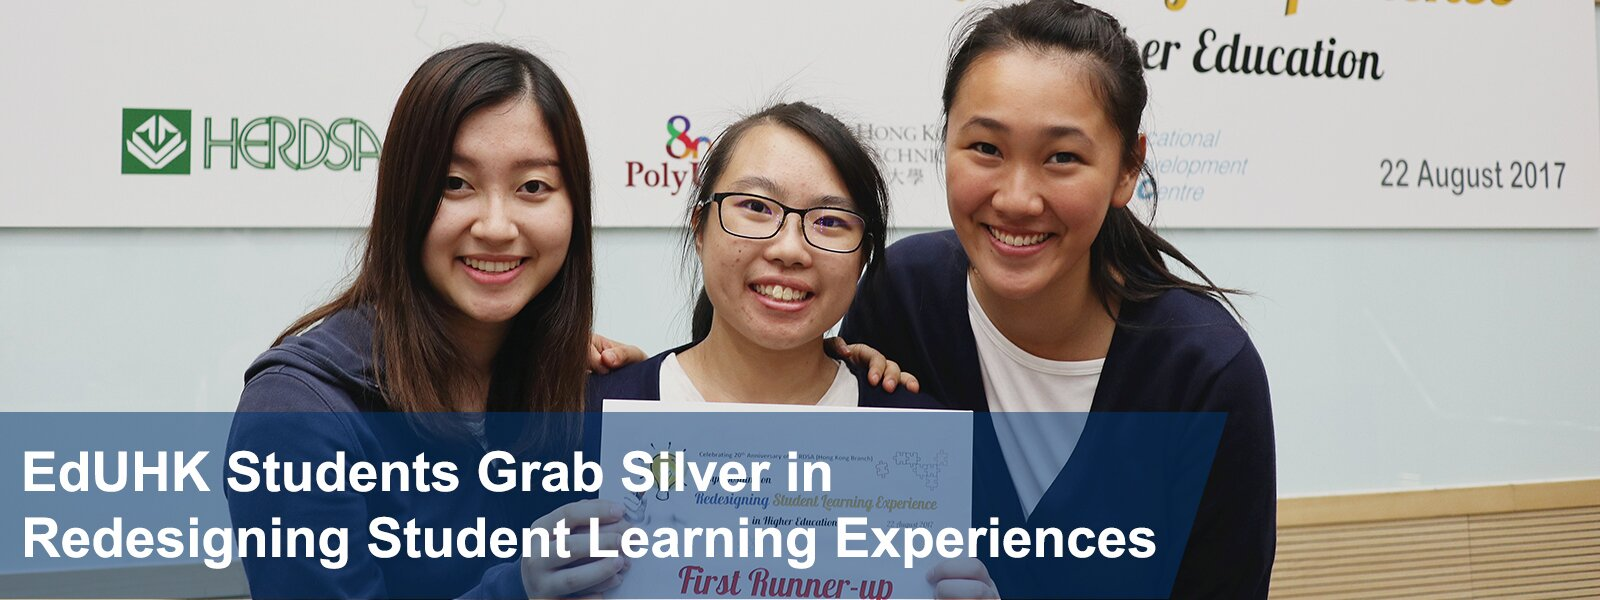 EdUHK Students Grab Silver in Redesigning Student Learning Experiences